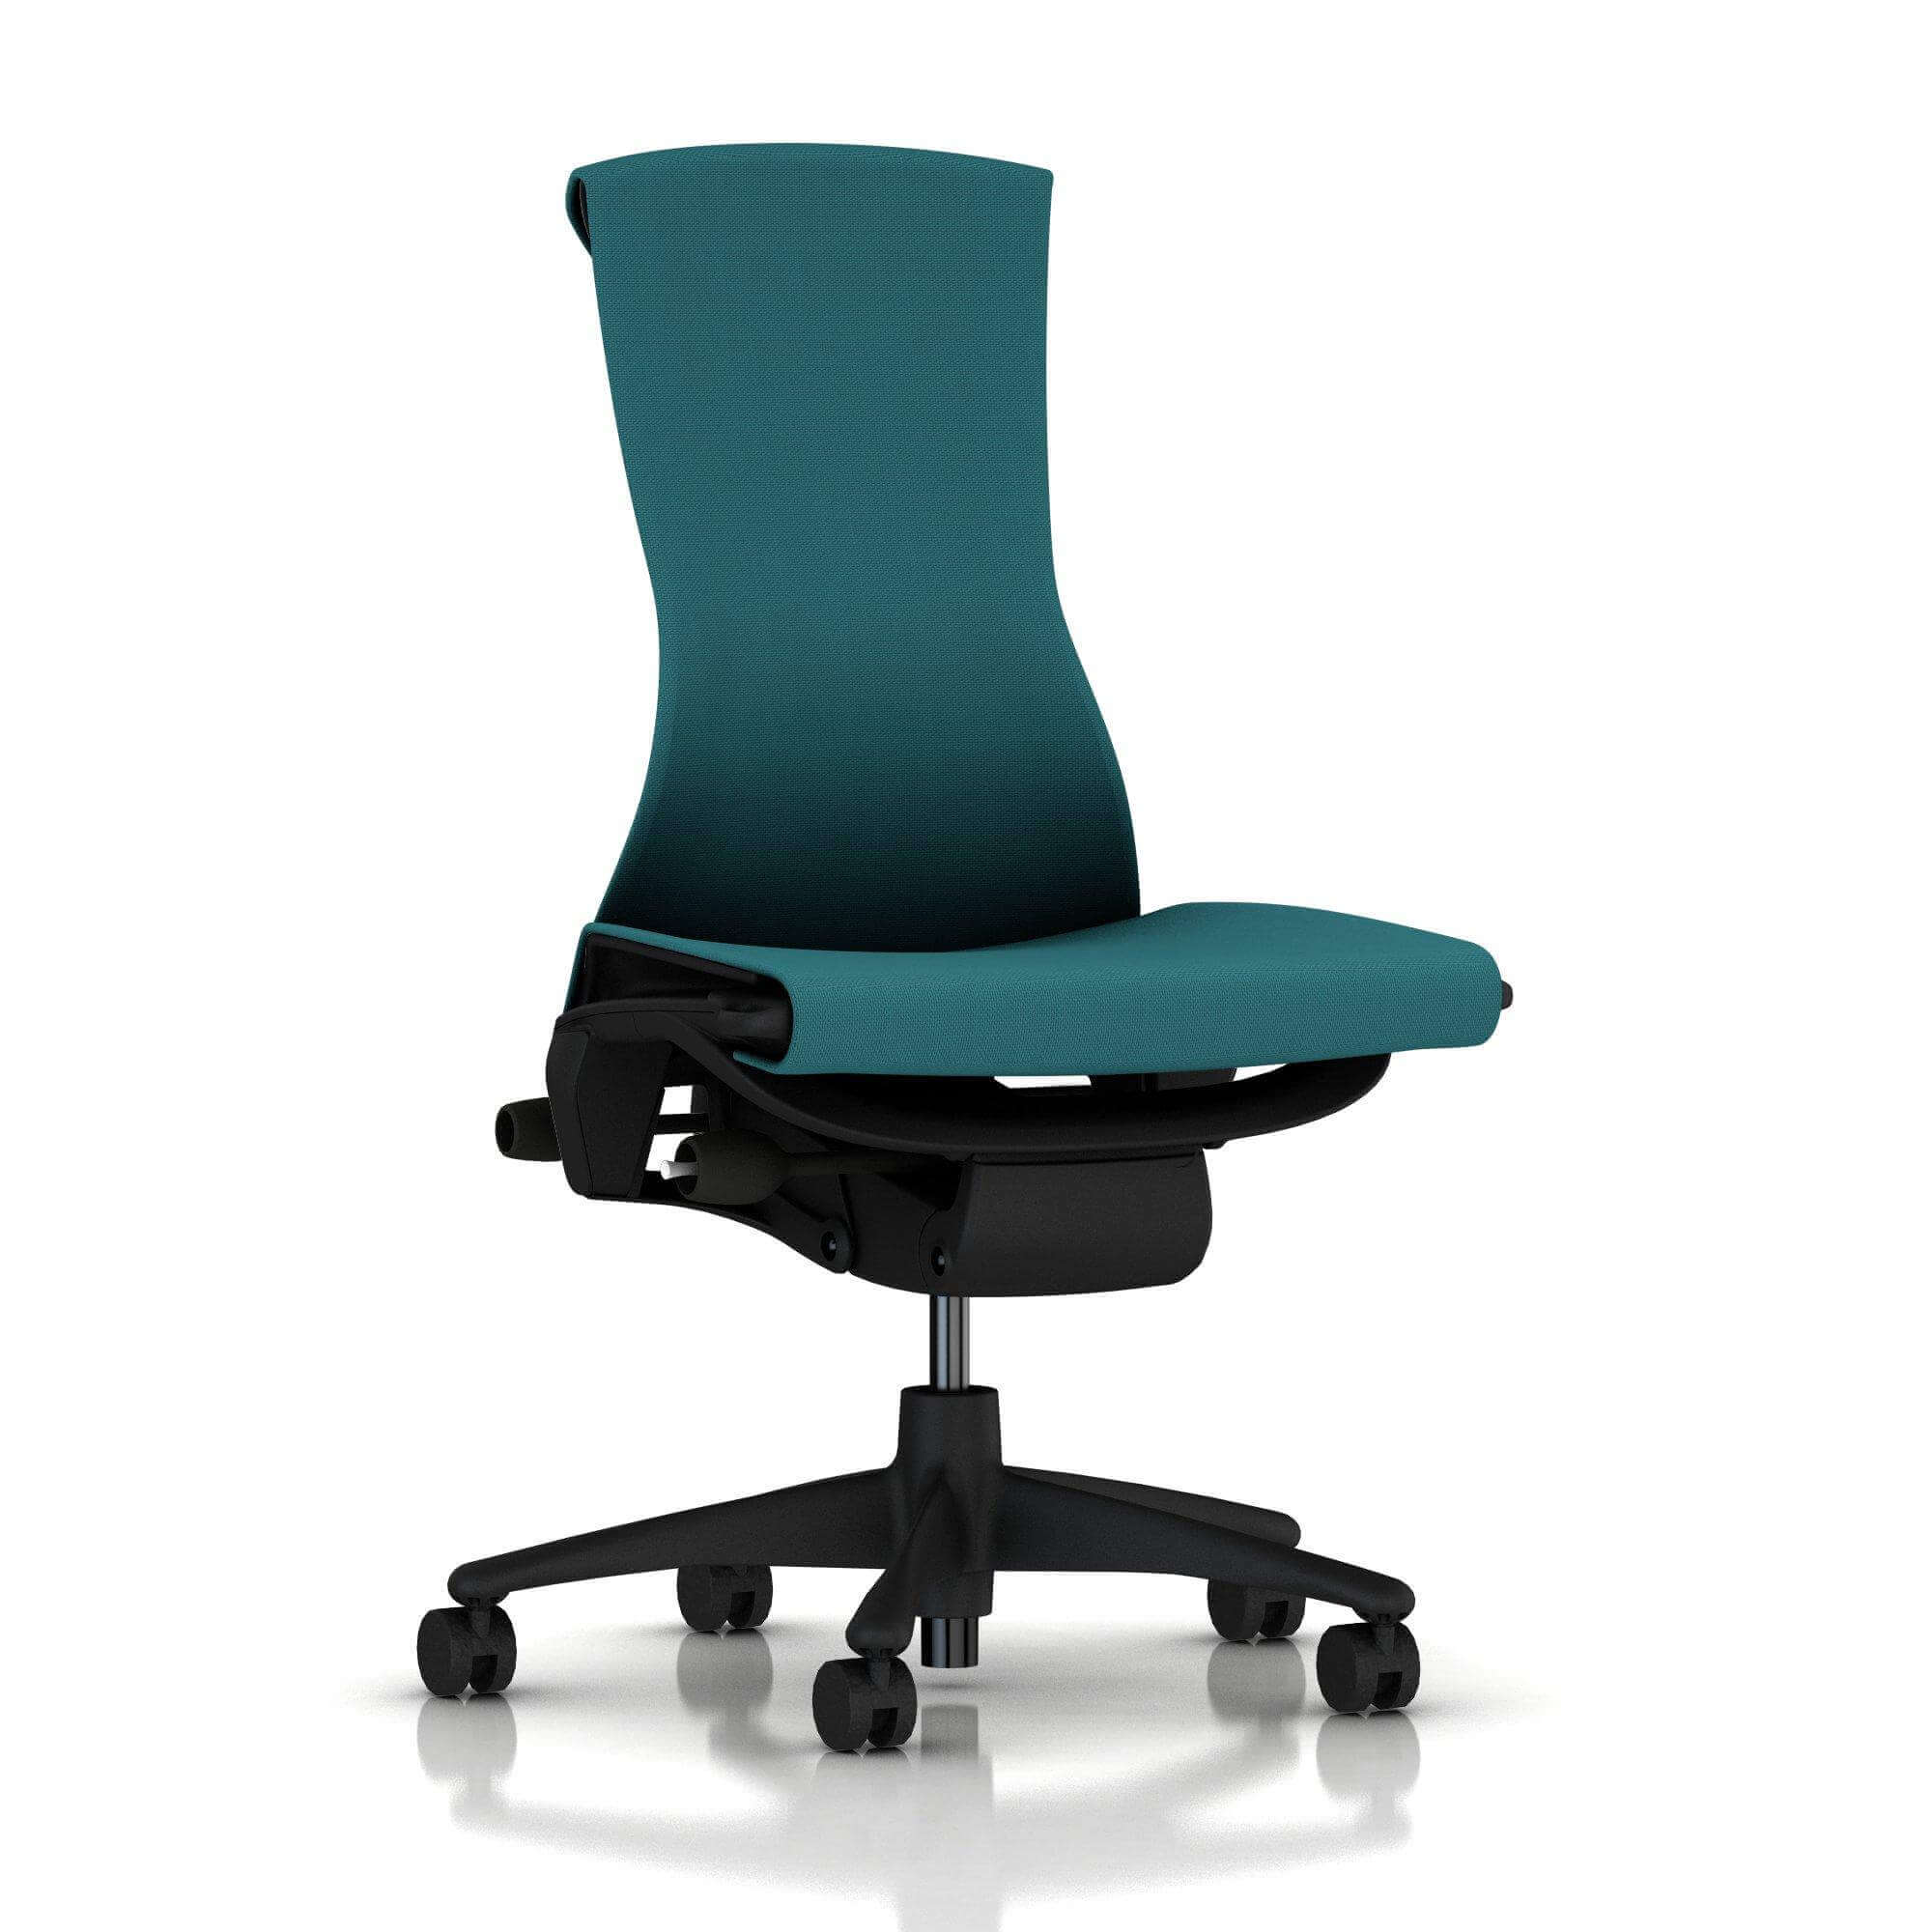 der Embody Chair in Graphite/Peacock